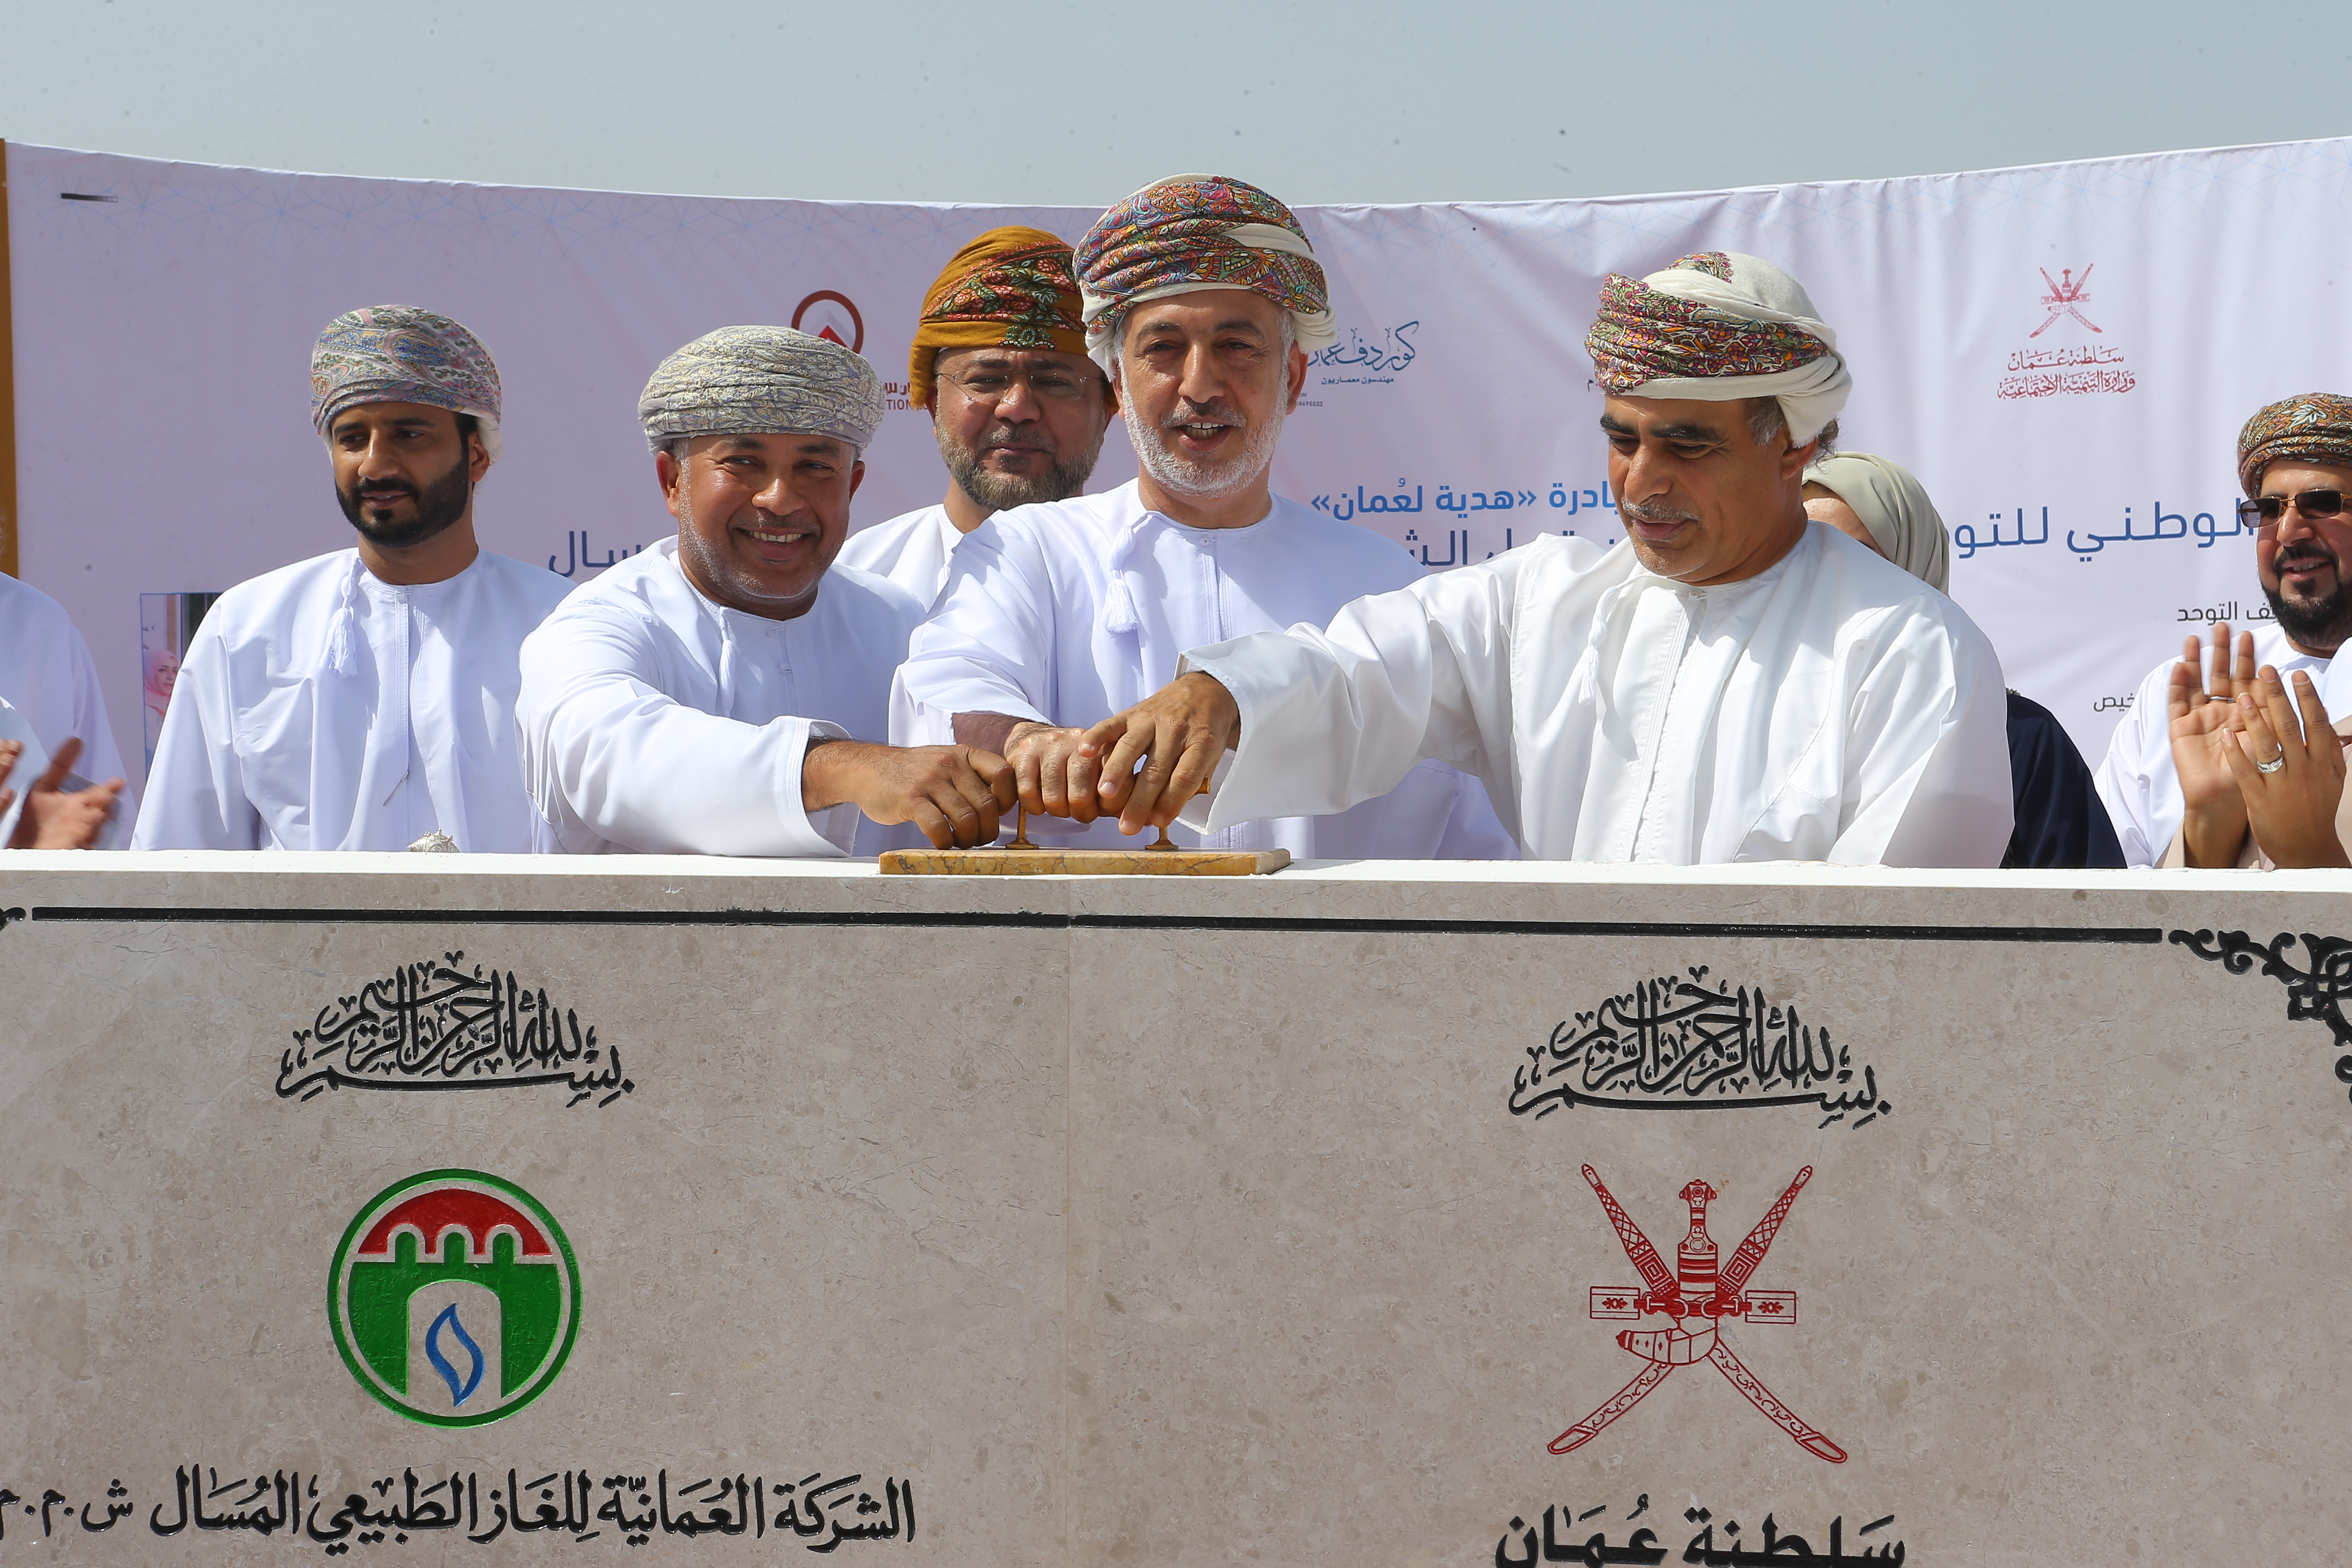 Work on Oman's first public autism centre starts, opening next year